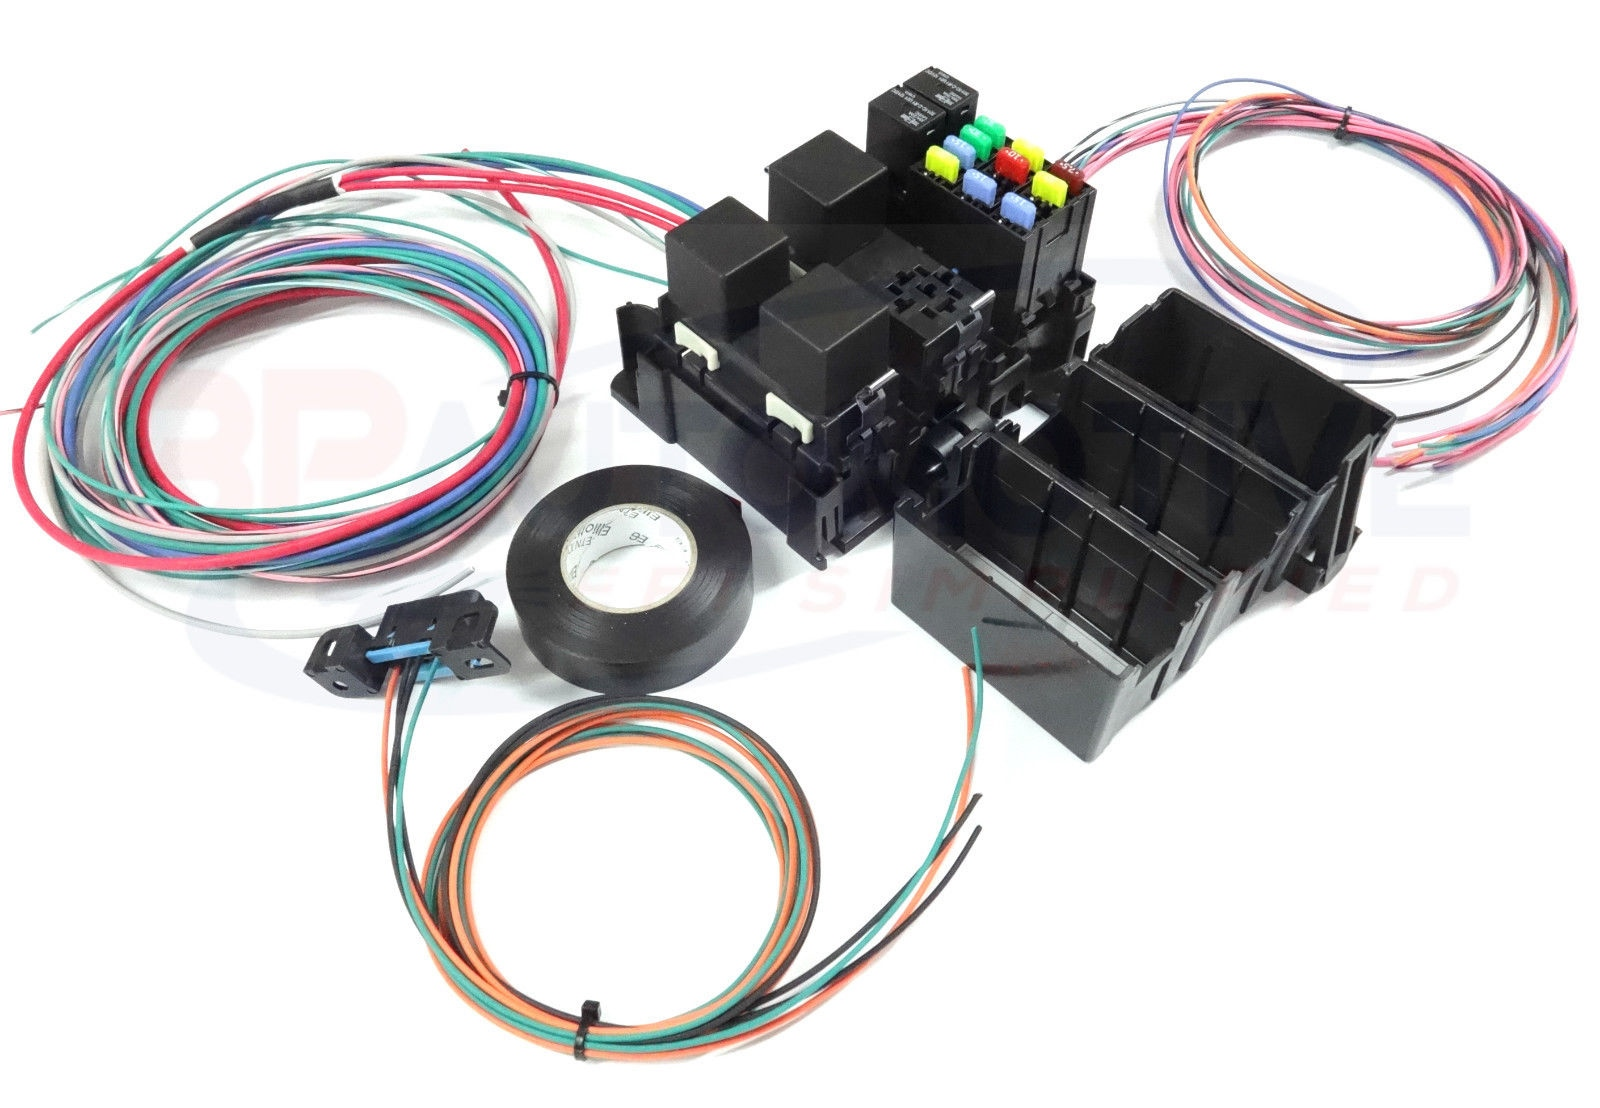 hight resolution of ls swap diy harness rework fuse block kit for ls standalone harness with fans